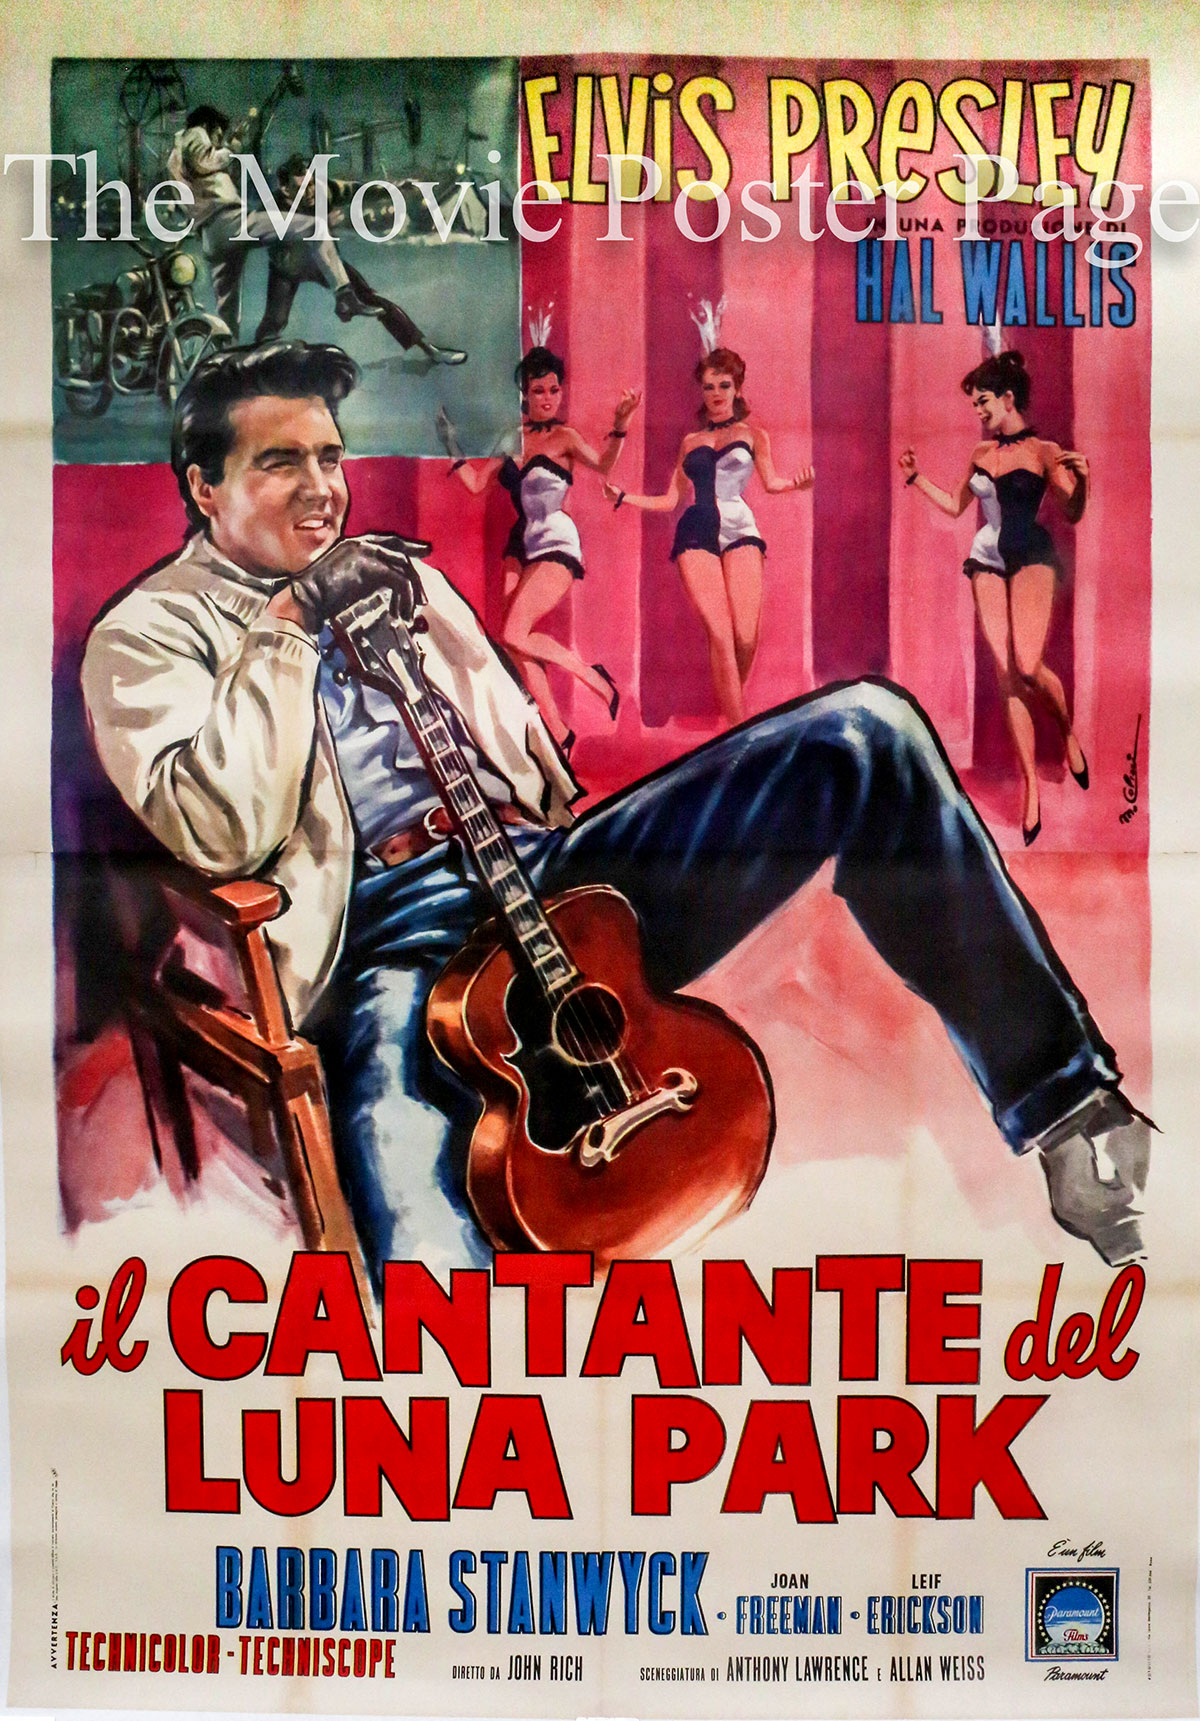 This is an image of the 4-sheet Italian promotional poster for the 1964 John Rich film Roustabout starring Elvis Presley and Barbara Stanwyck.